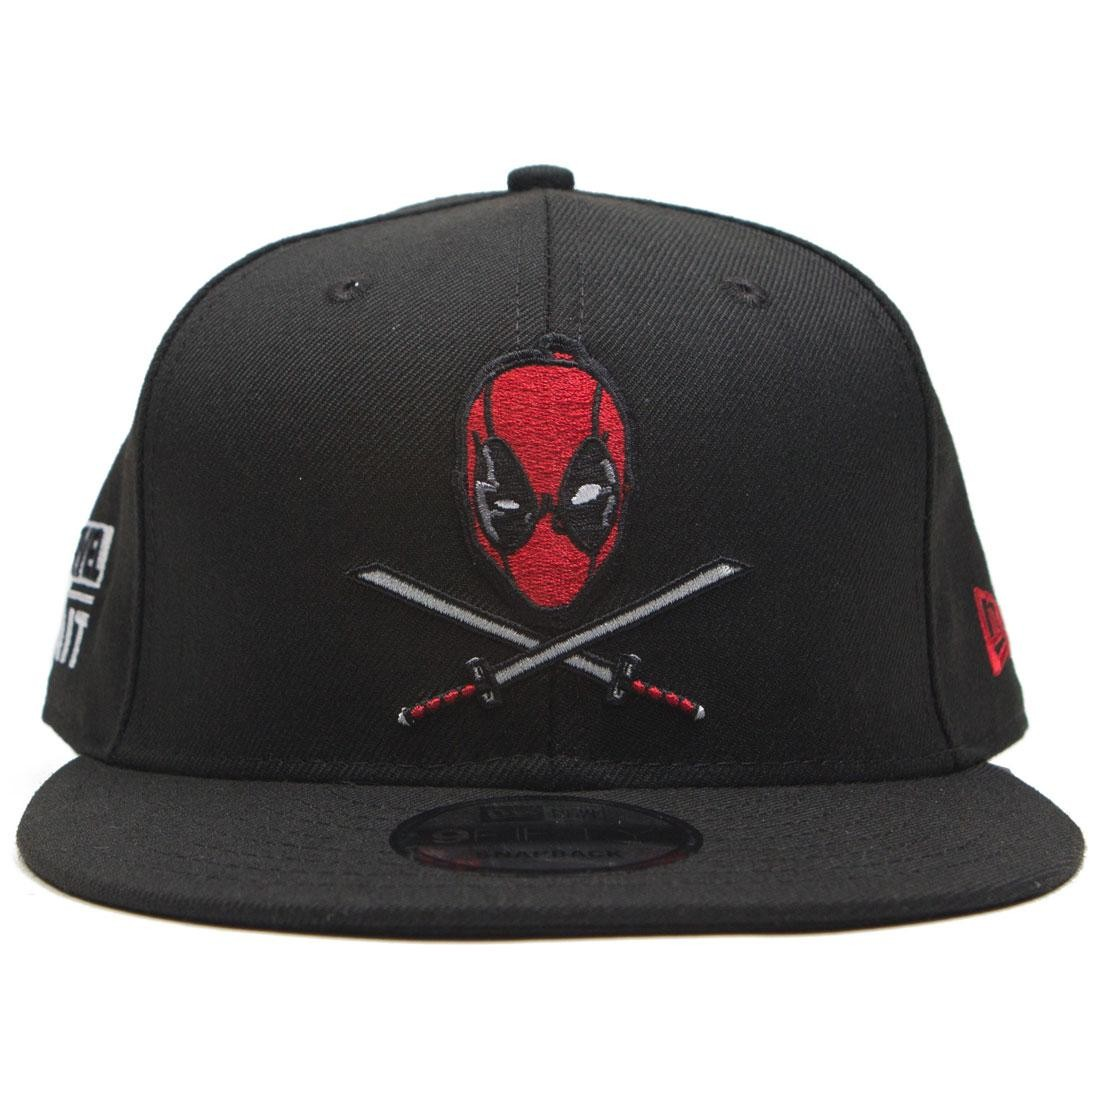 BAIT x New Era x Marvel Deadpool Swords Snapback Cap (black) 8105d3b62e9